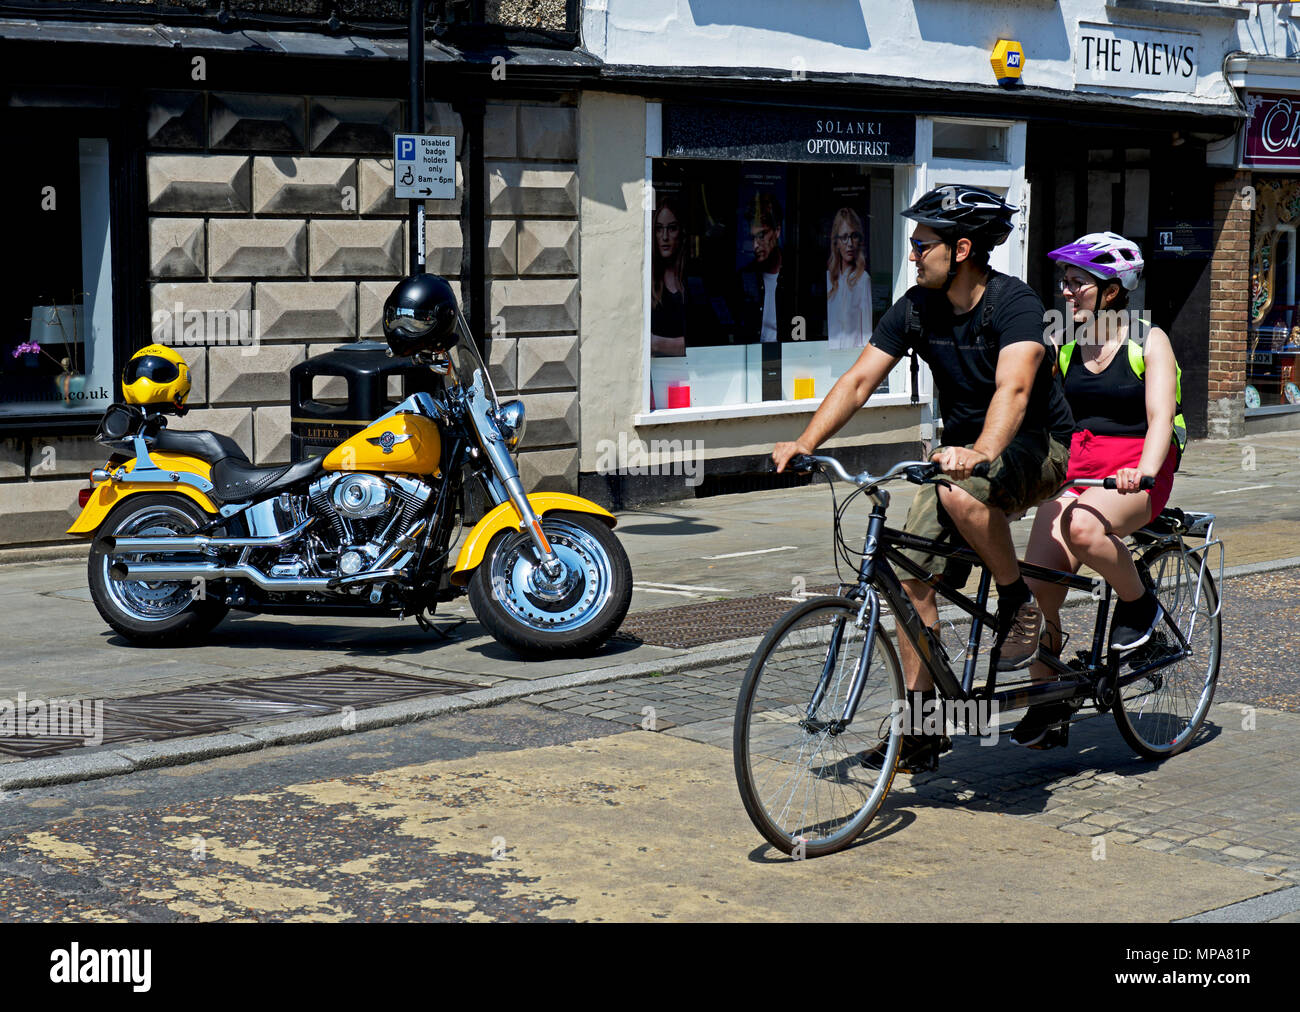 Couple riding tandem past Harley Davidson motorbike, St Ives, Cambridgeshire, England UK - Stock Image